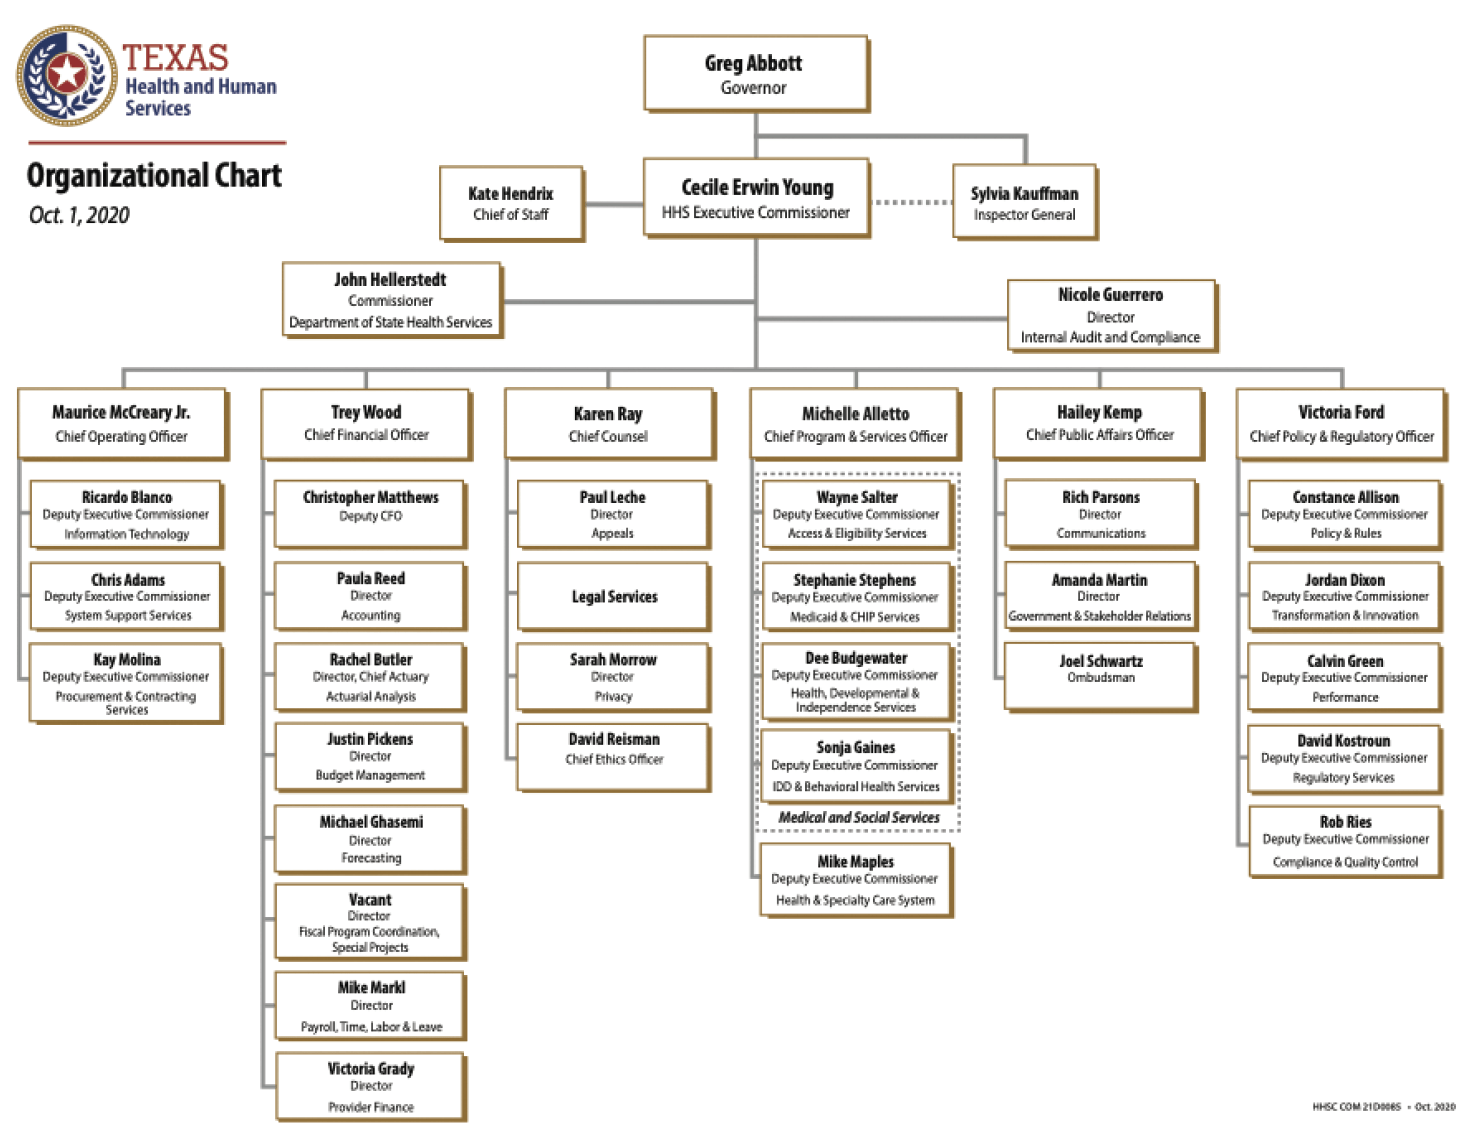 TXHHS Organizational Chart for MH GUIDE